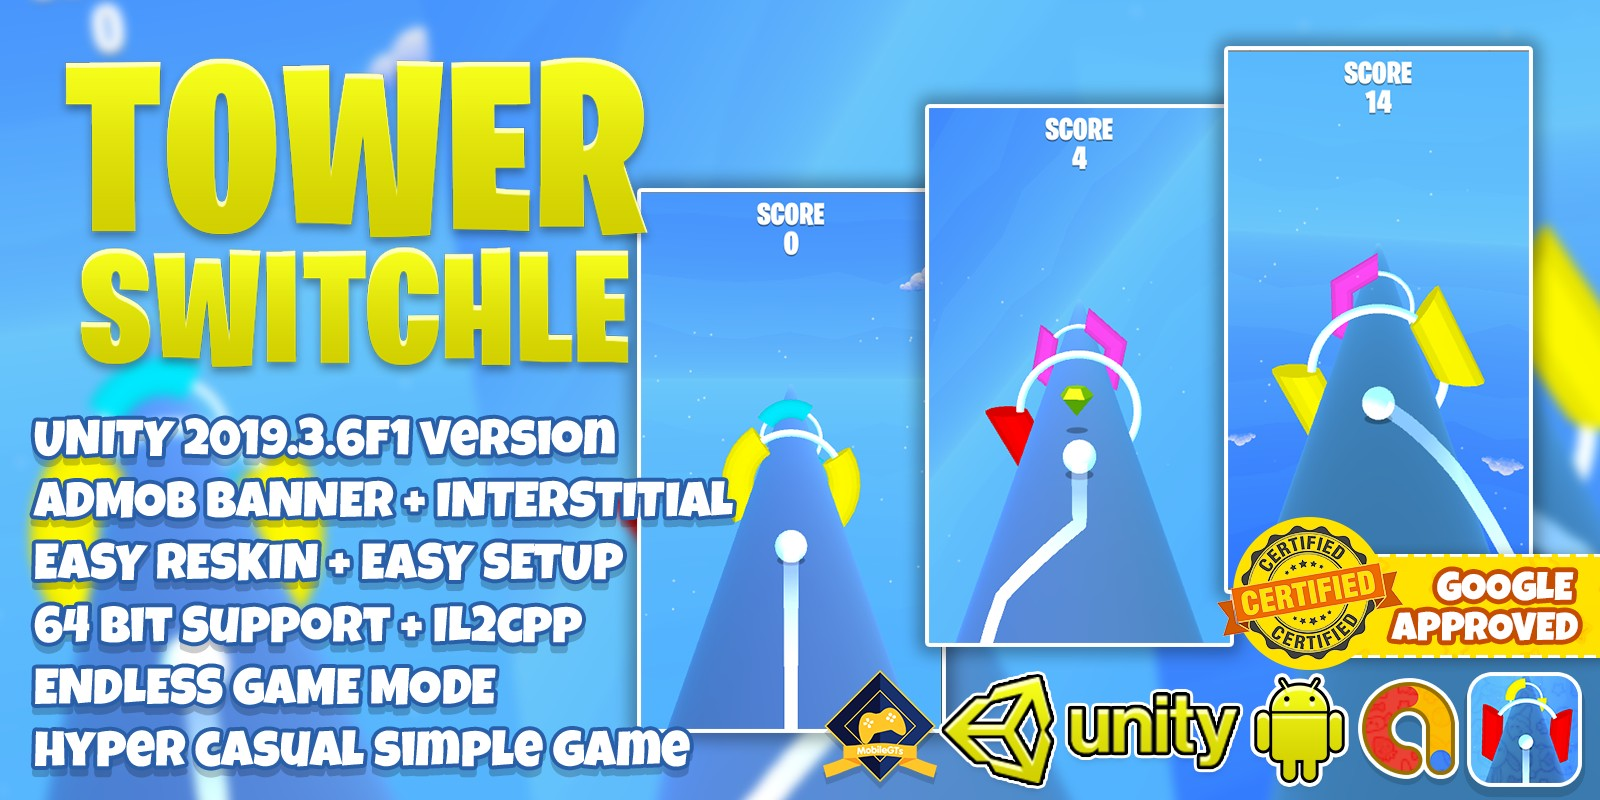 Tower Switchle Unity3D Source Code